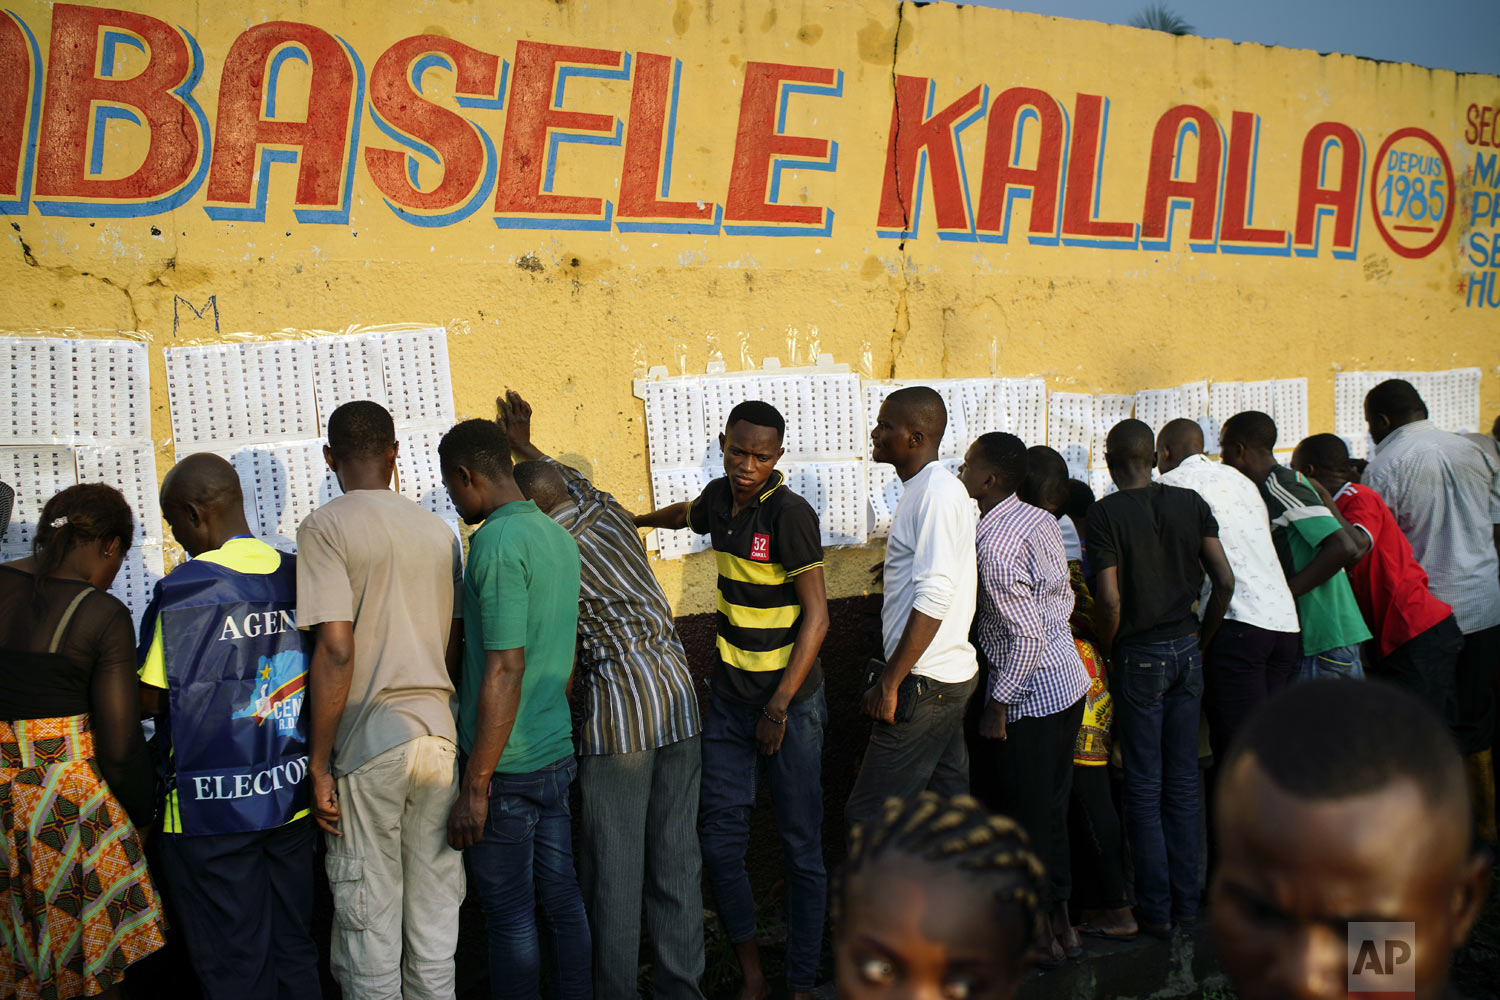 Election officials tape voter registration lists to a wall of the Les Anges primary school in Kinshasa, Congo, as voters start to check their names, Sunday Dec. 30, 2018. The election process was delayed when voters burned six voting machines and ballots midday, angered by the fact that the registrations lists had not arrived. Replacement machines had to be brought in, and voting started at nightfall, 12 hours late. Forty million voters are registered for a presidential race plagued by years of delay and persistent rumors of lack of preparation. (AP Photo/Jerome Delay)